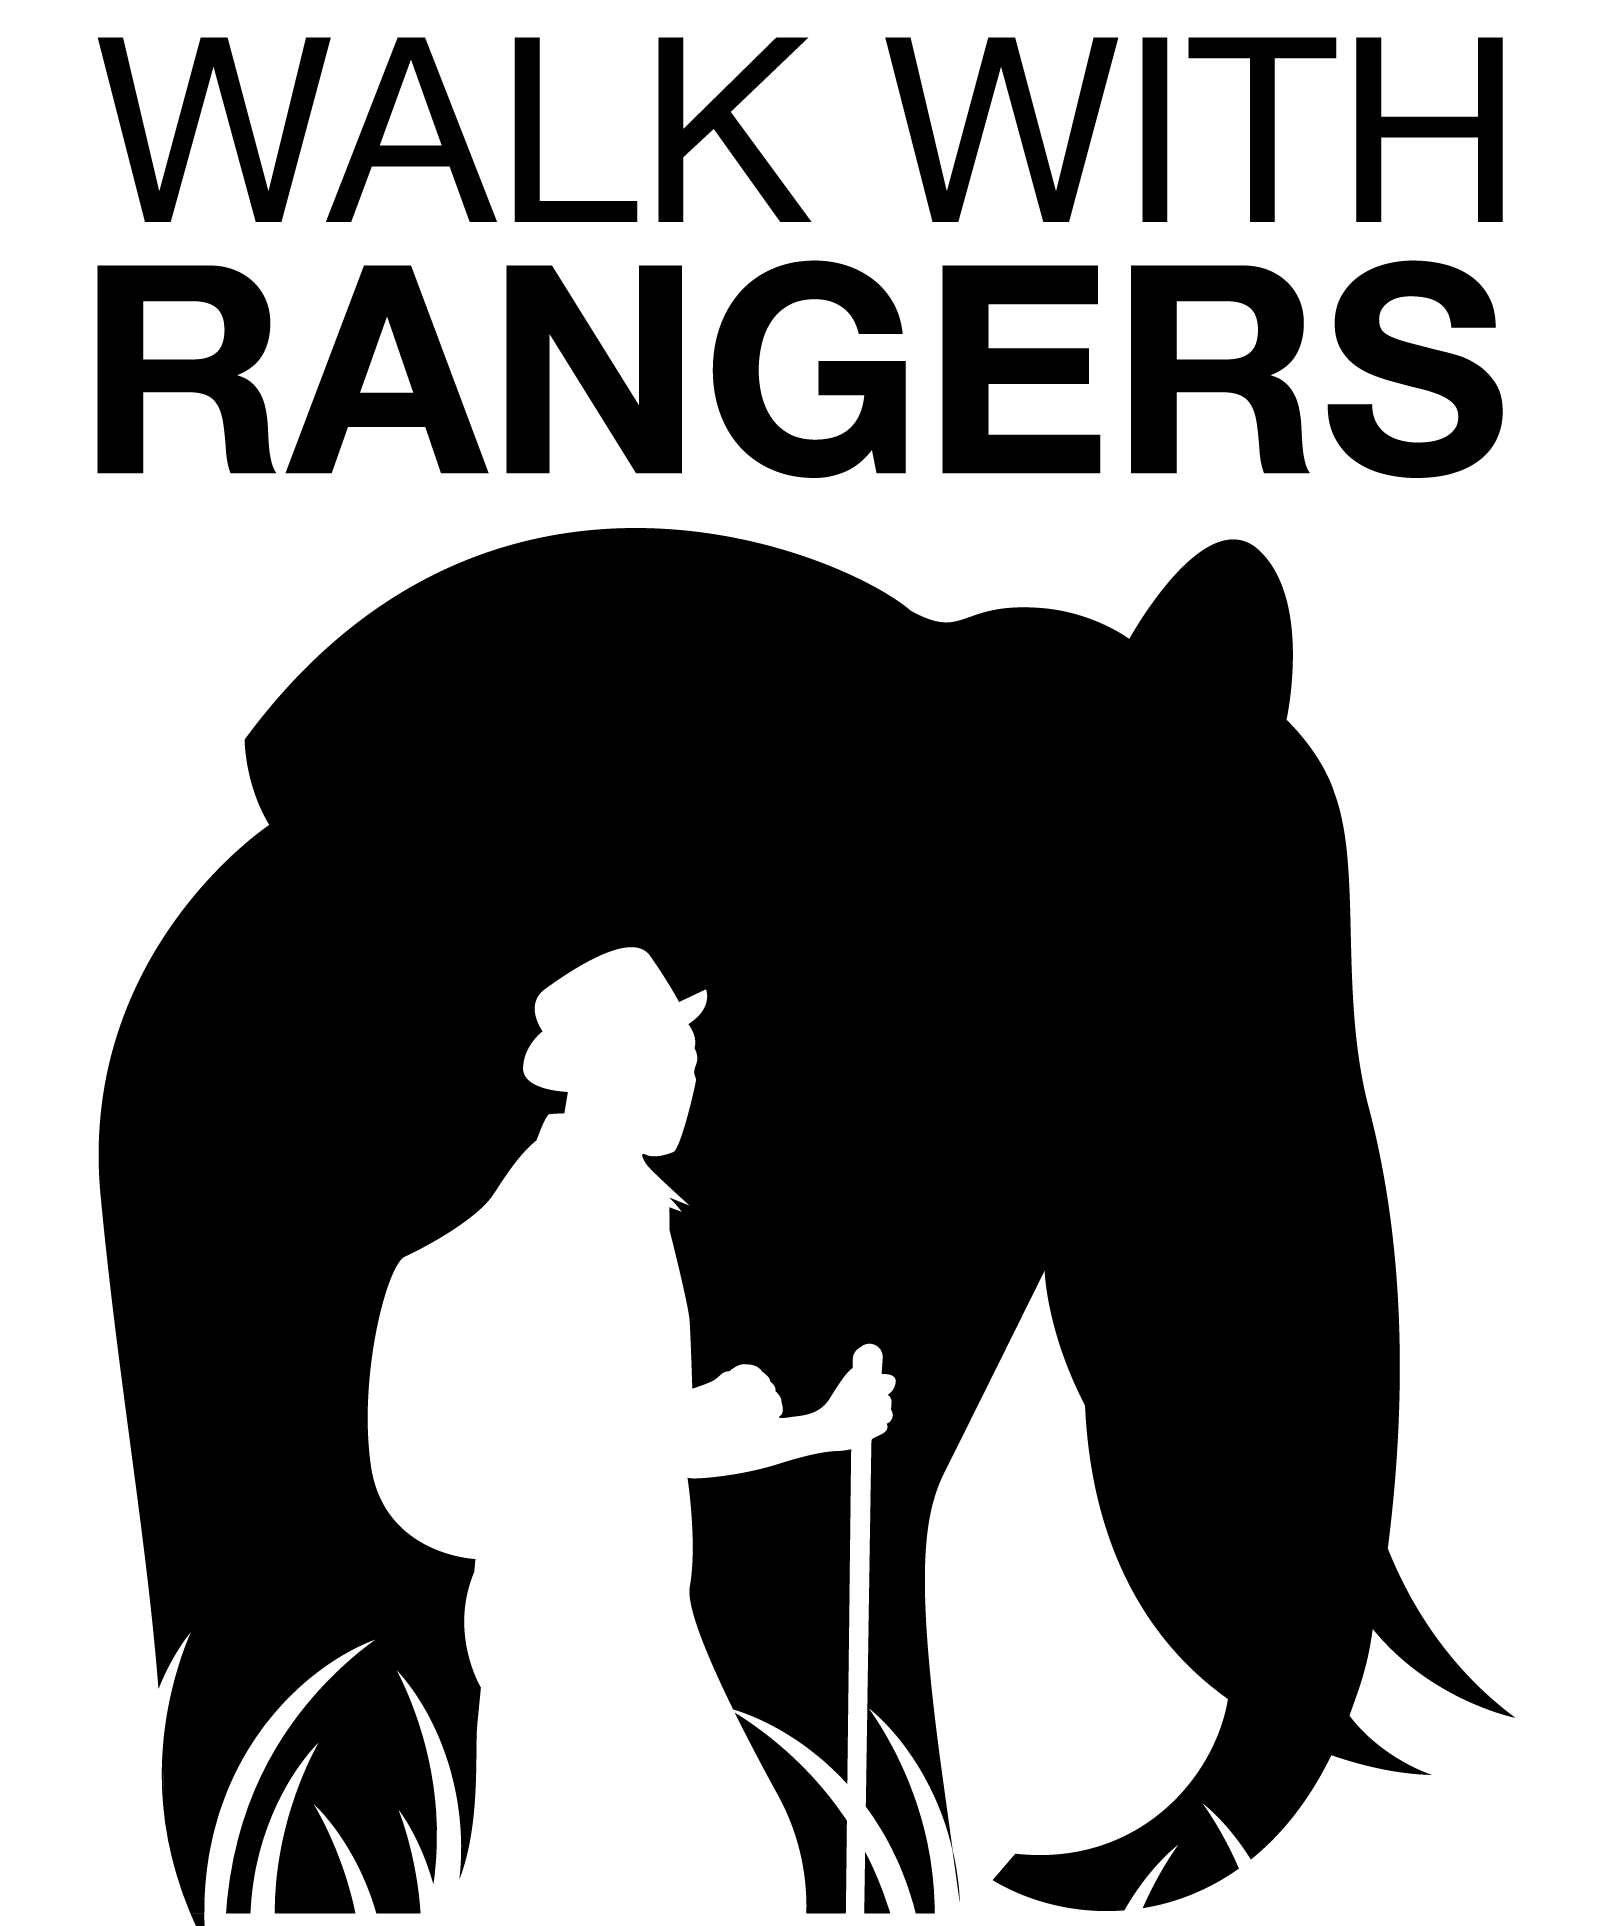 Walk With Rangers